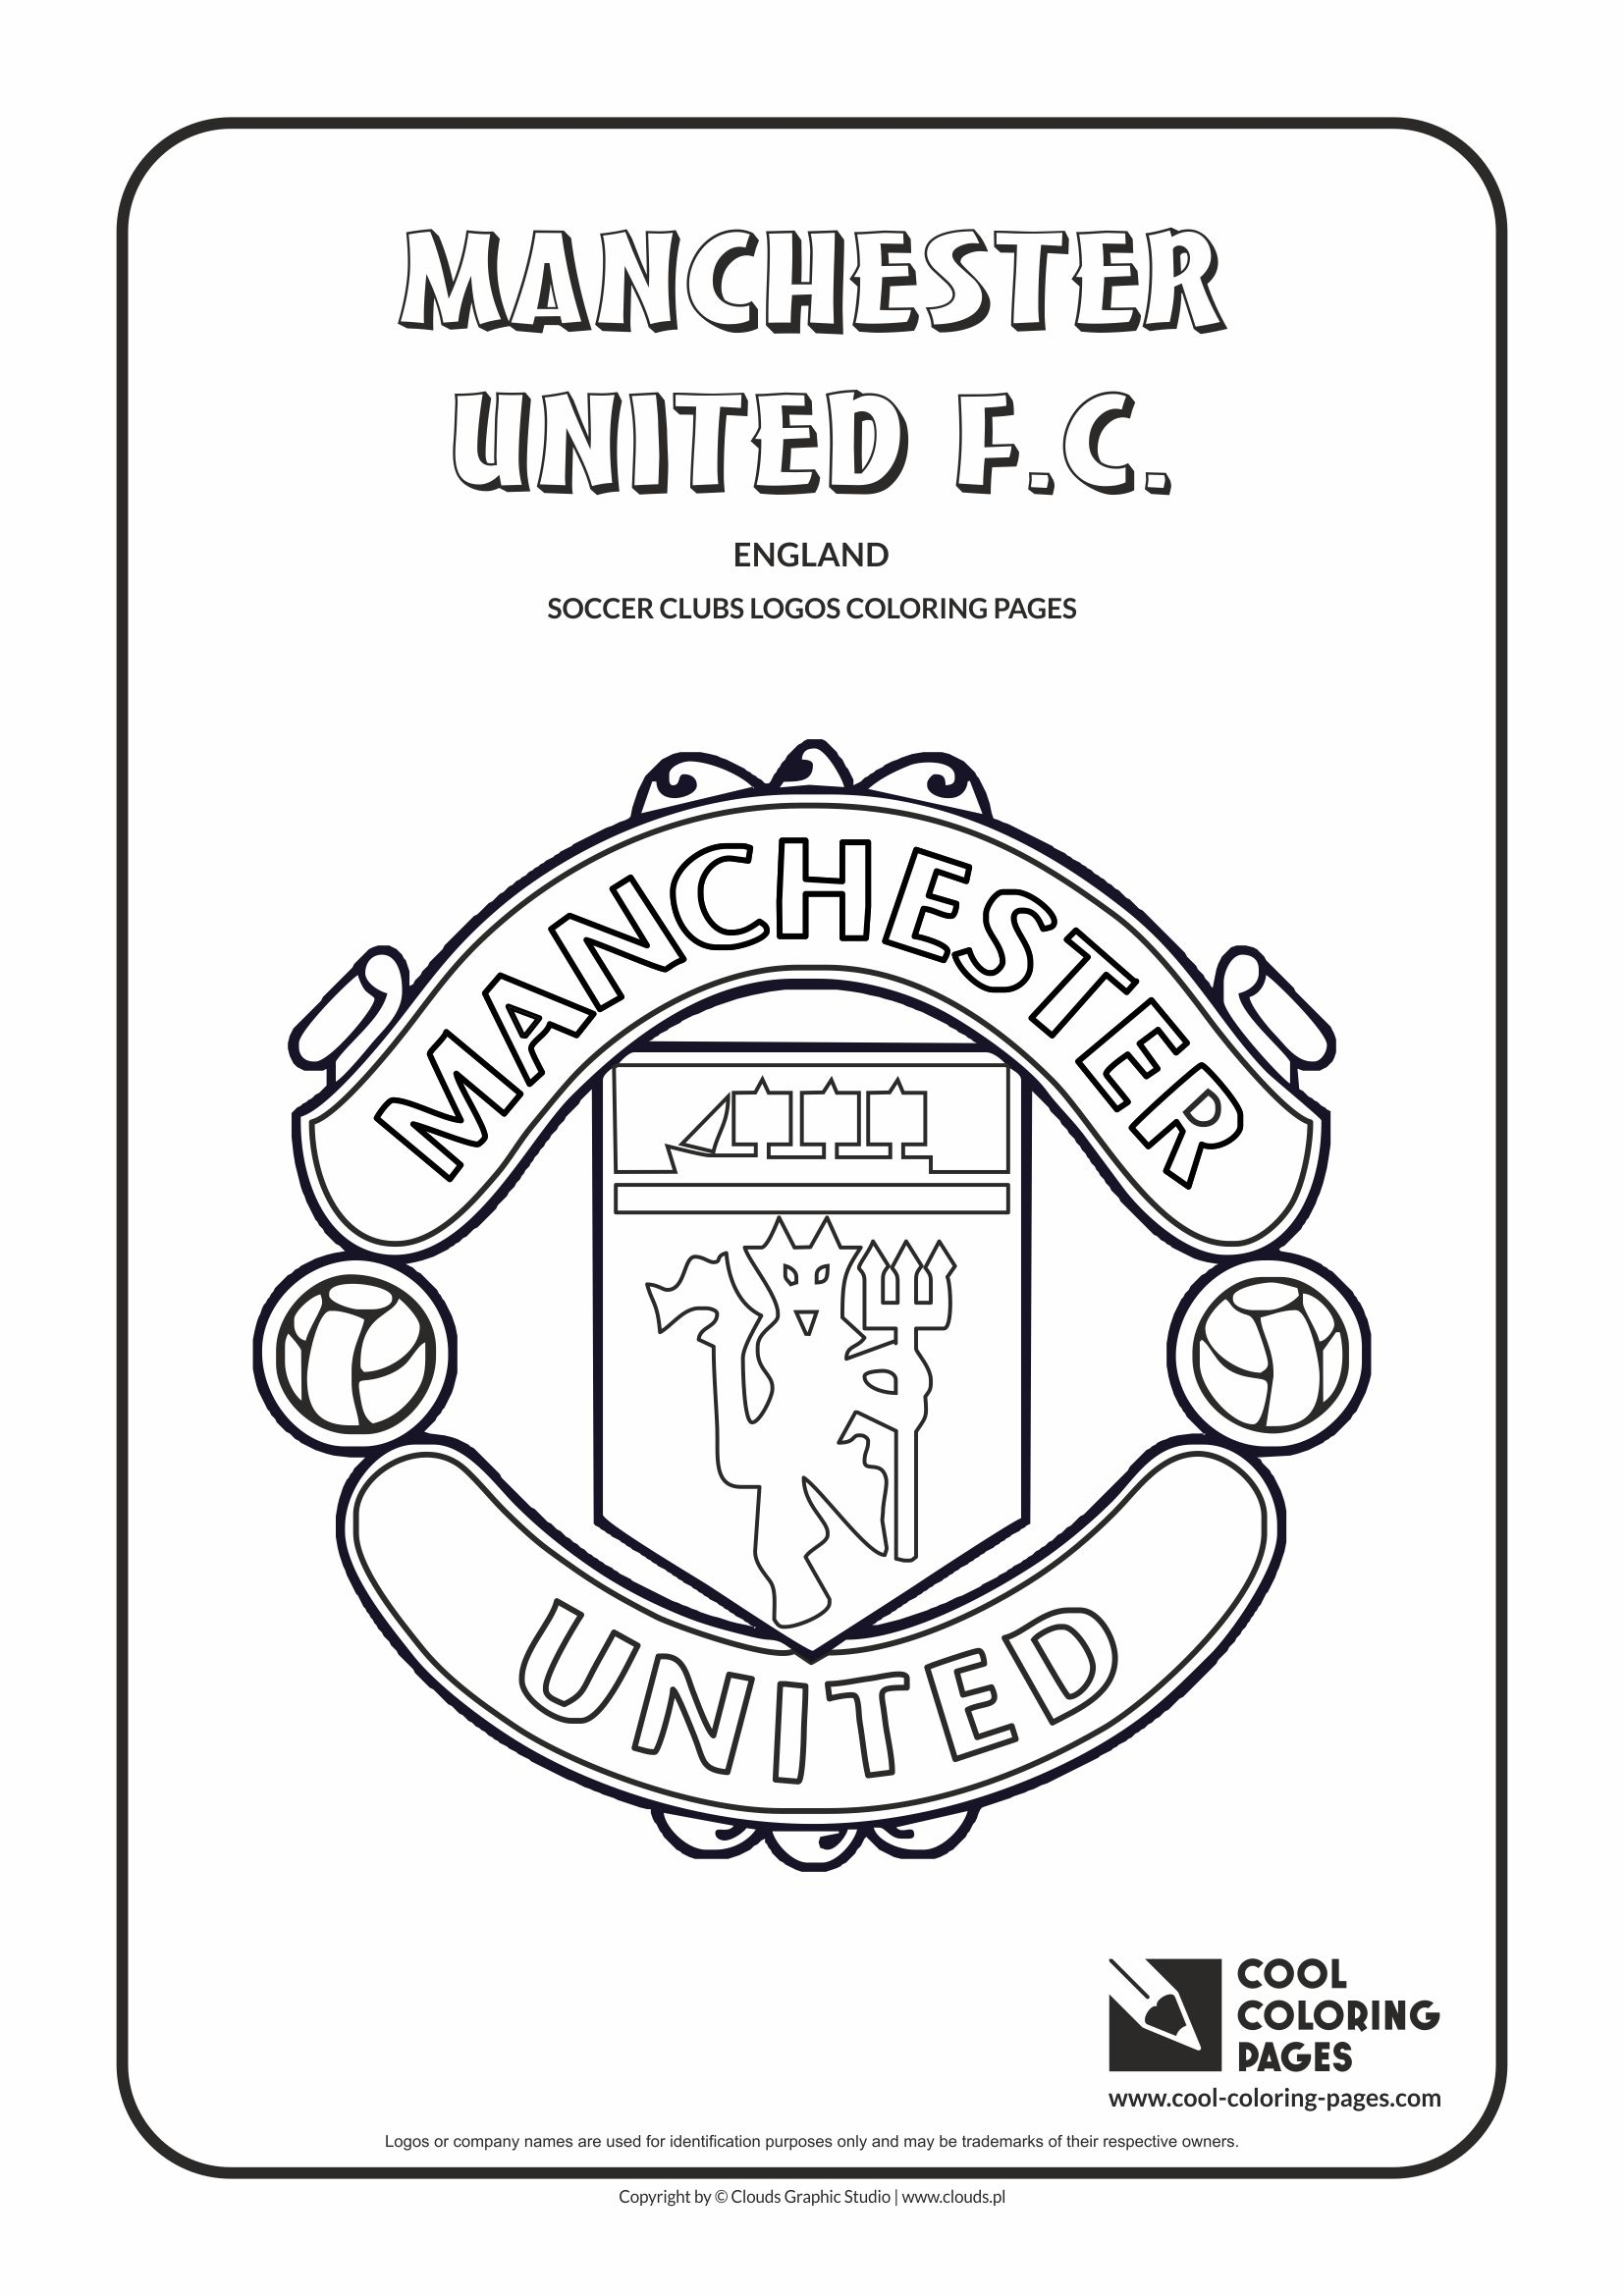 Cool Coloring Pages Soccer Clubs Logos Cool Coloring Pages Free ...